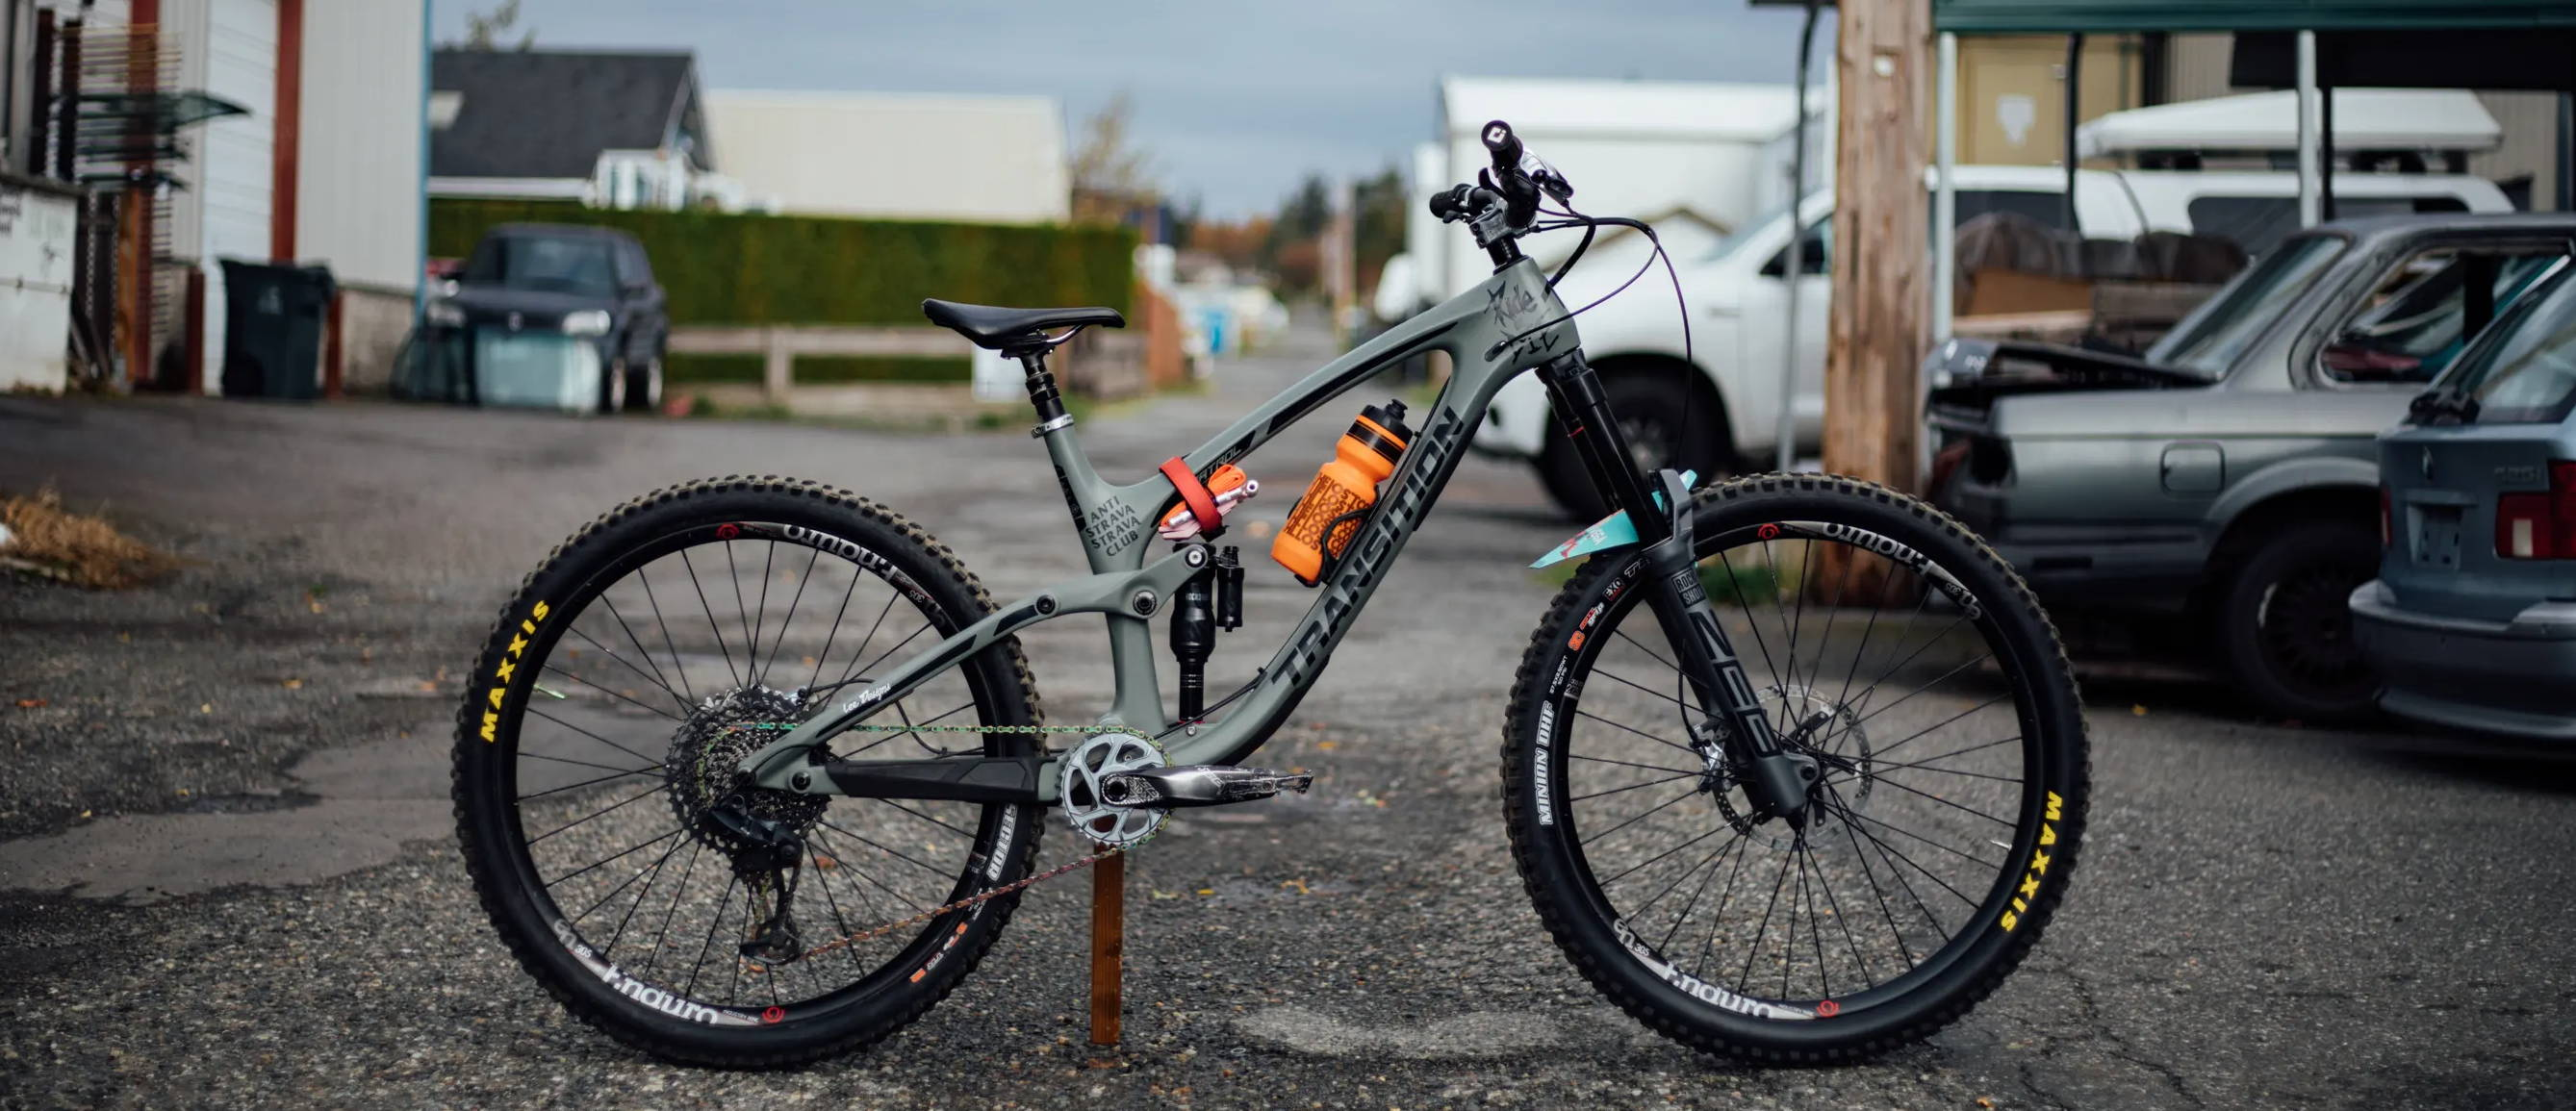 transition patrol bike check  bike in an alley  with a rockshox zeb sram groupset and drivetrain